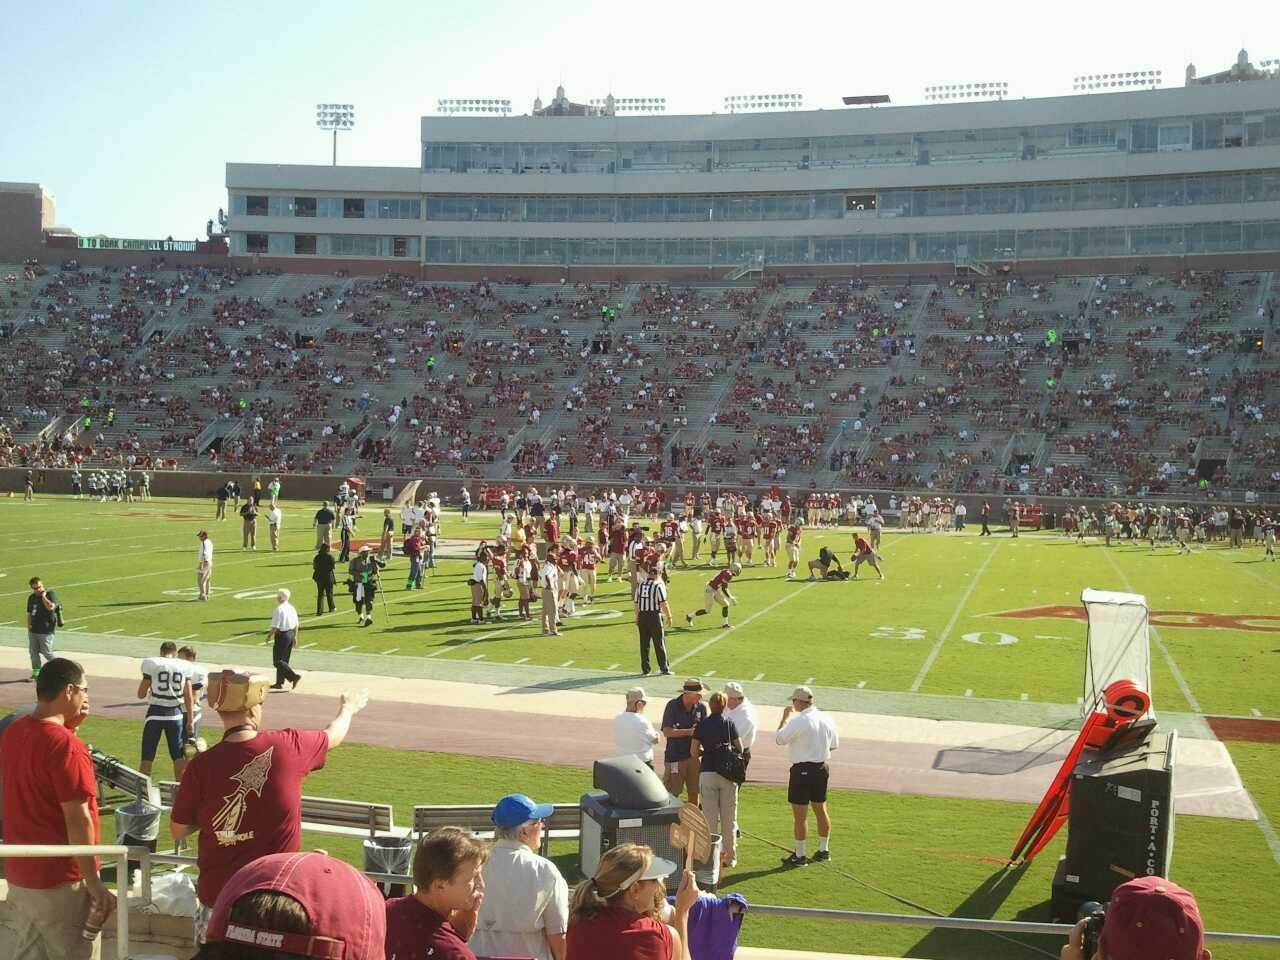 Bobby Bowden Field at Doak Campbell Stadium Section 9 Row 10 Seat 19